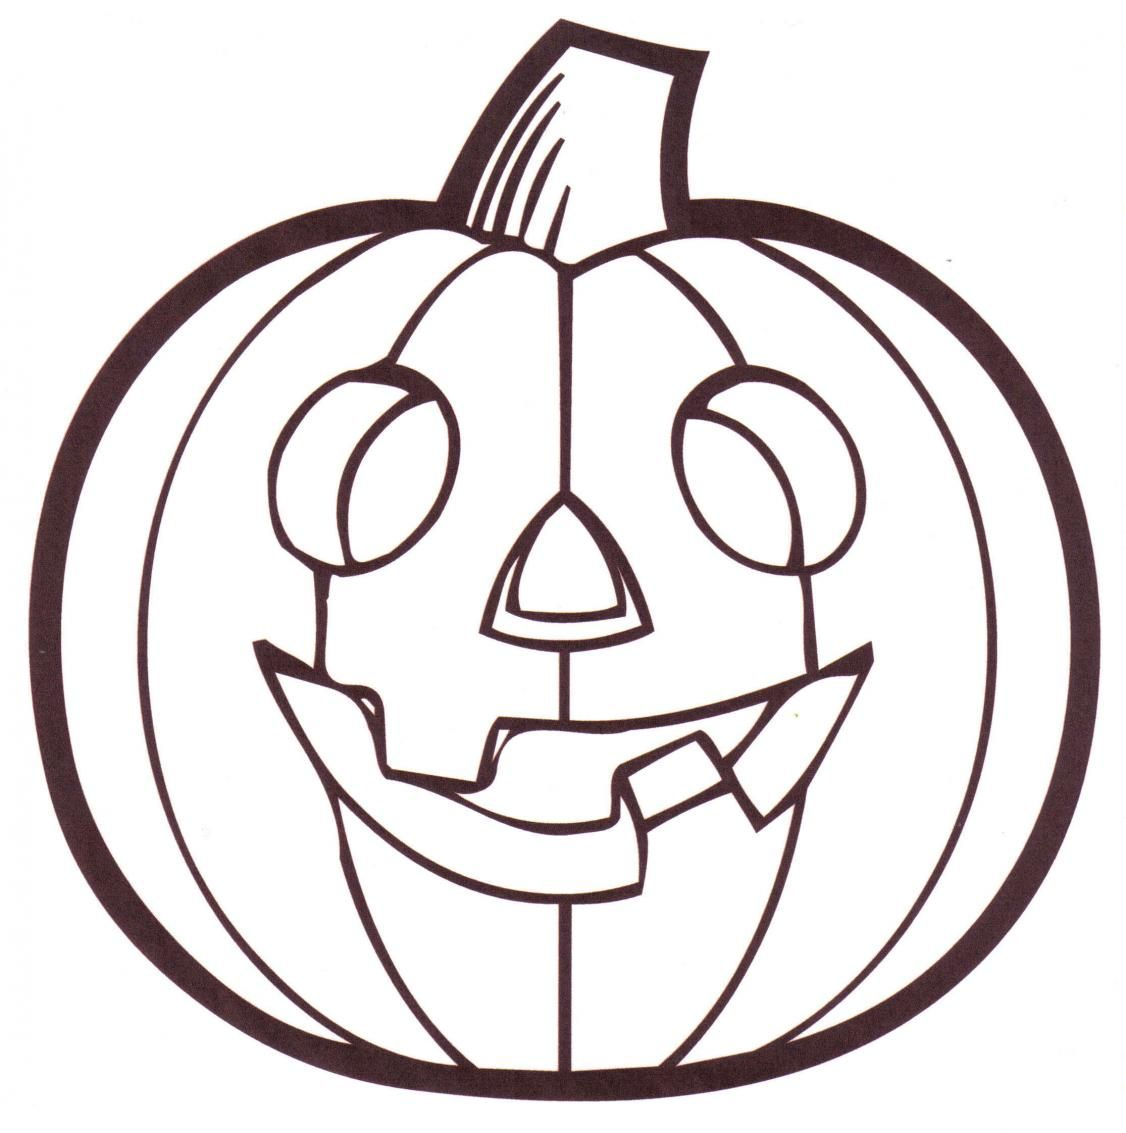 1126x1133 Bonanza Jack O Lantern Pictures To Color We Have Compiled A Set